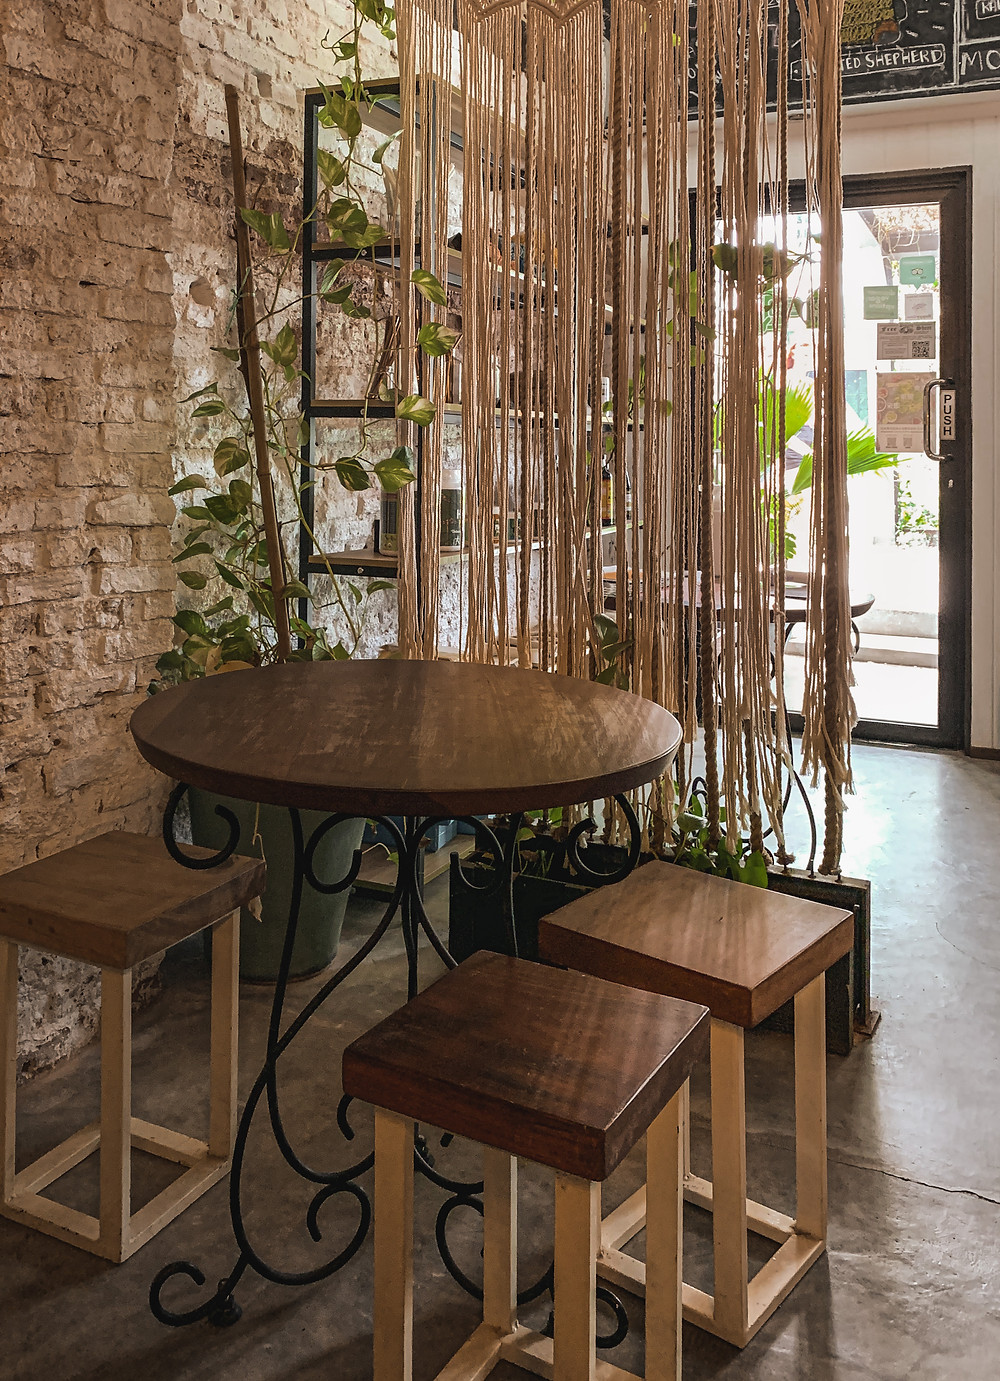 Wooden stool and table by a brick wall and rope partition corner of Wholey Wonder, Penang, RollingBear Travels blog.